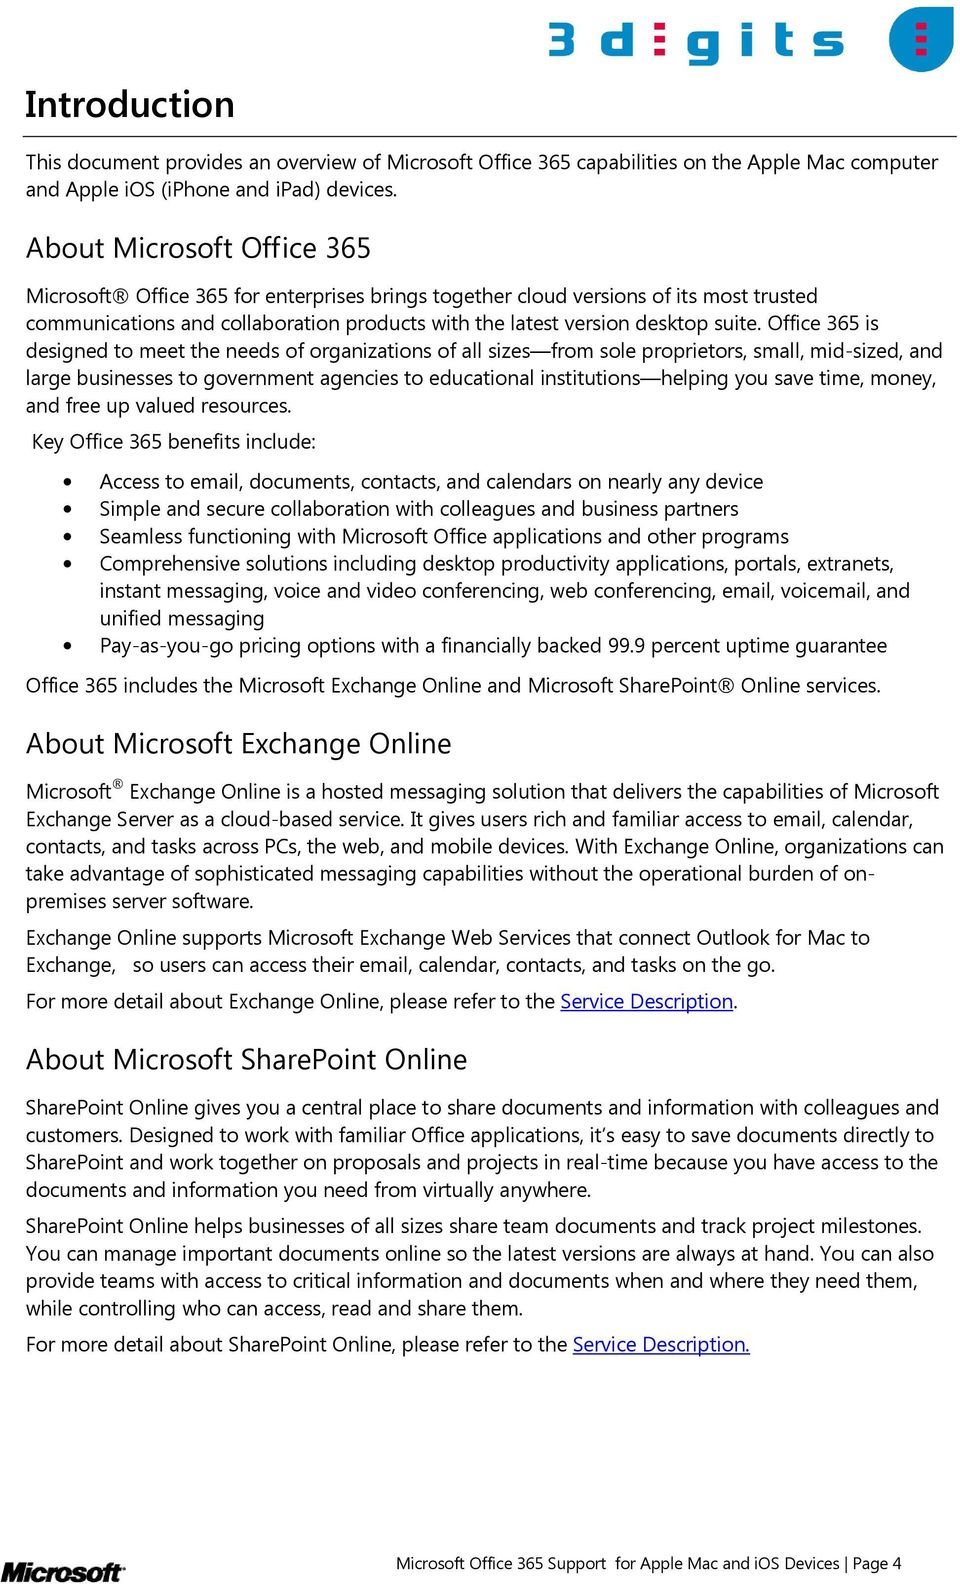 Office 365 is designed to meet the needs of organizations of all sizes from sole proprietors, small, mid-sized, and large businesses to government agencies to educational institutions helping you